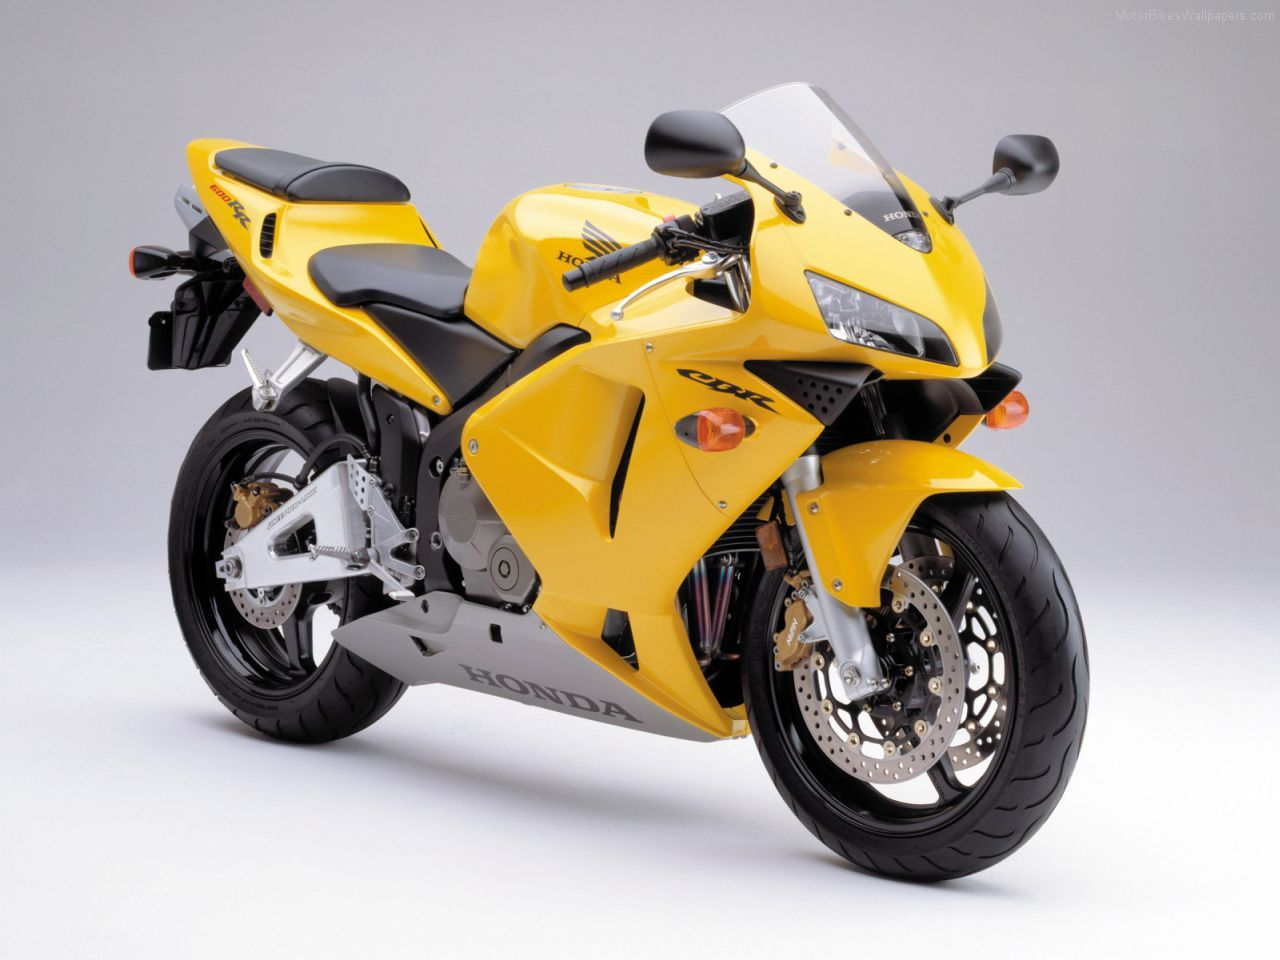 Bikes Honda honda bikes wallpapers